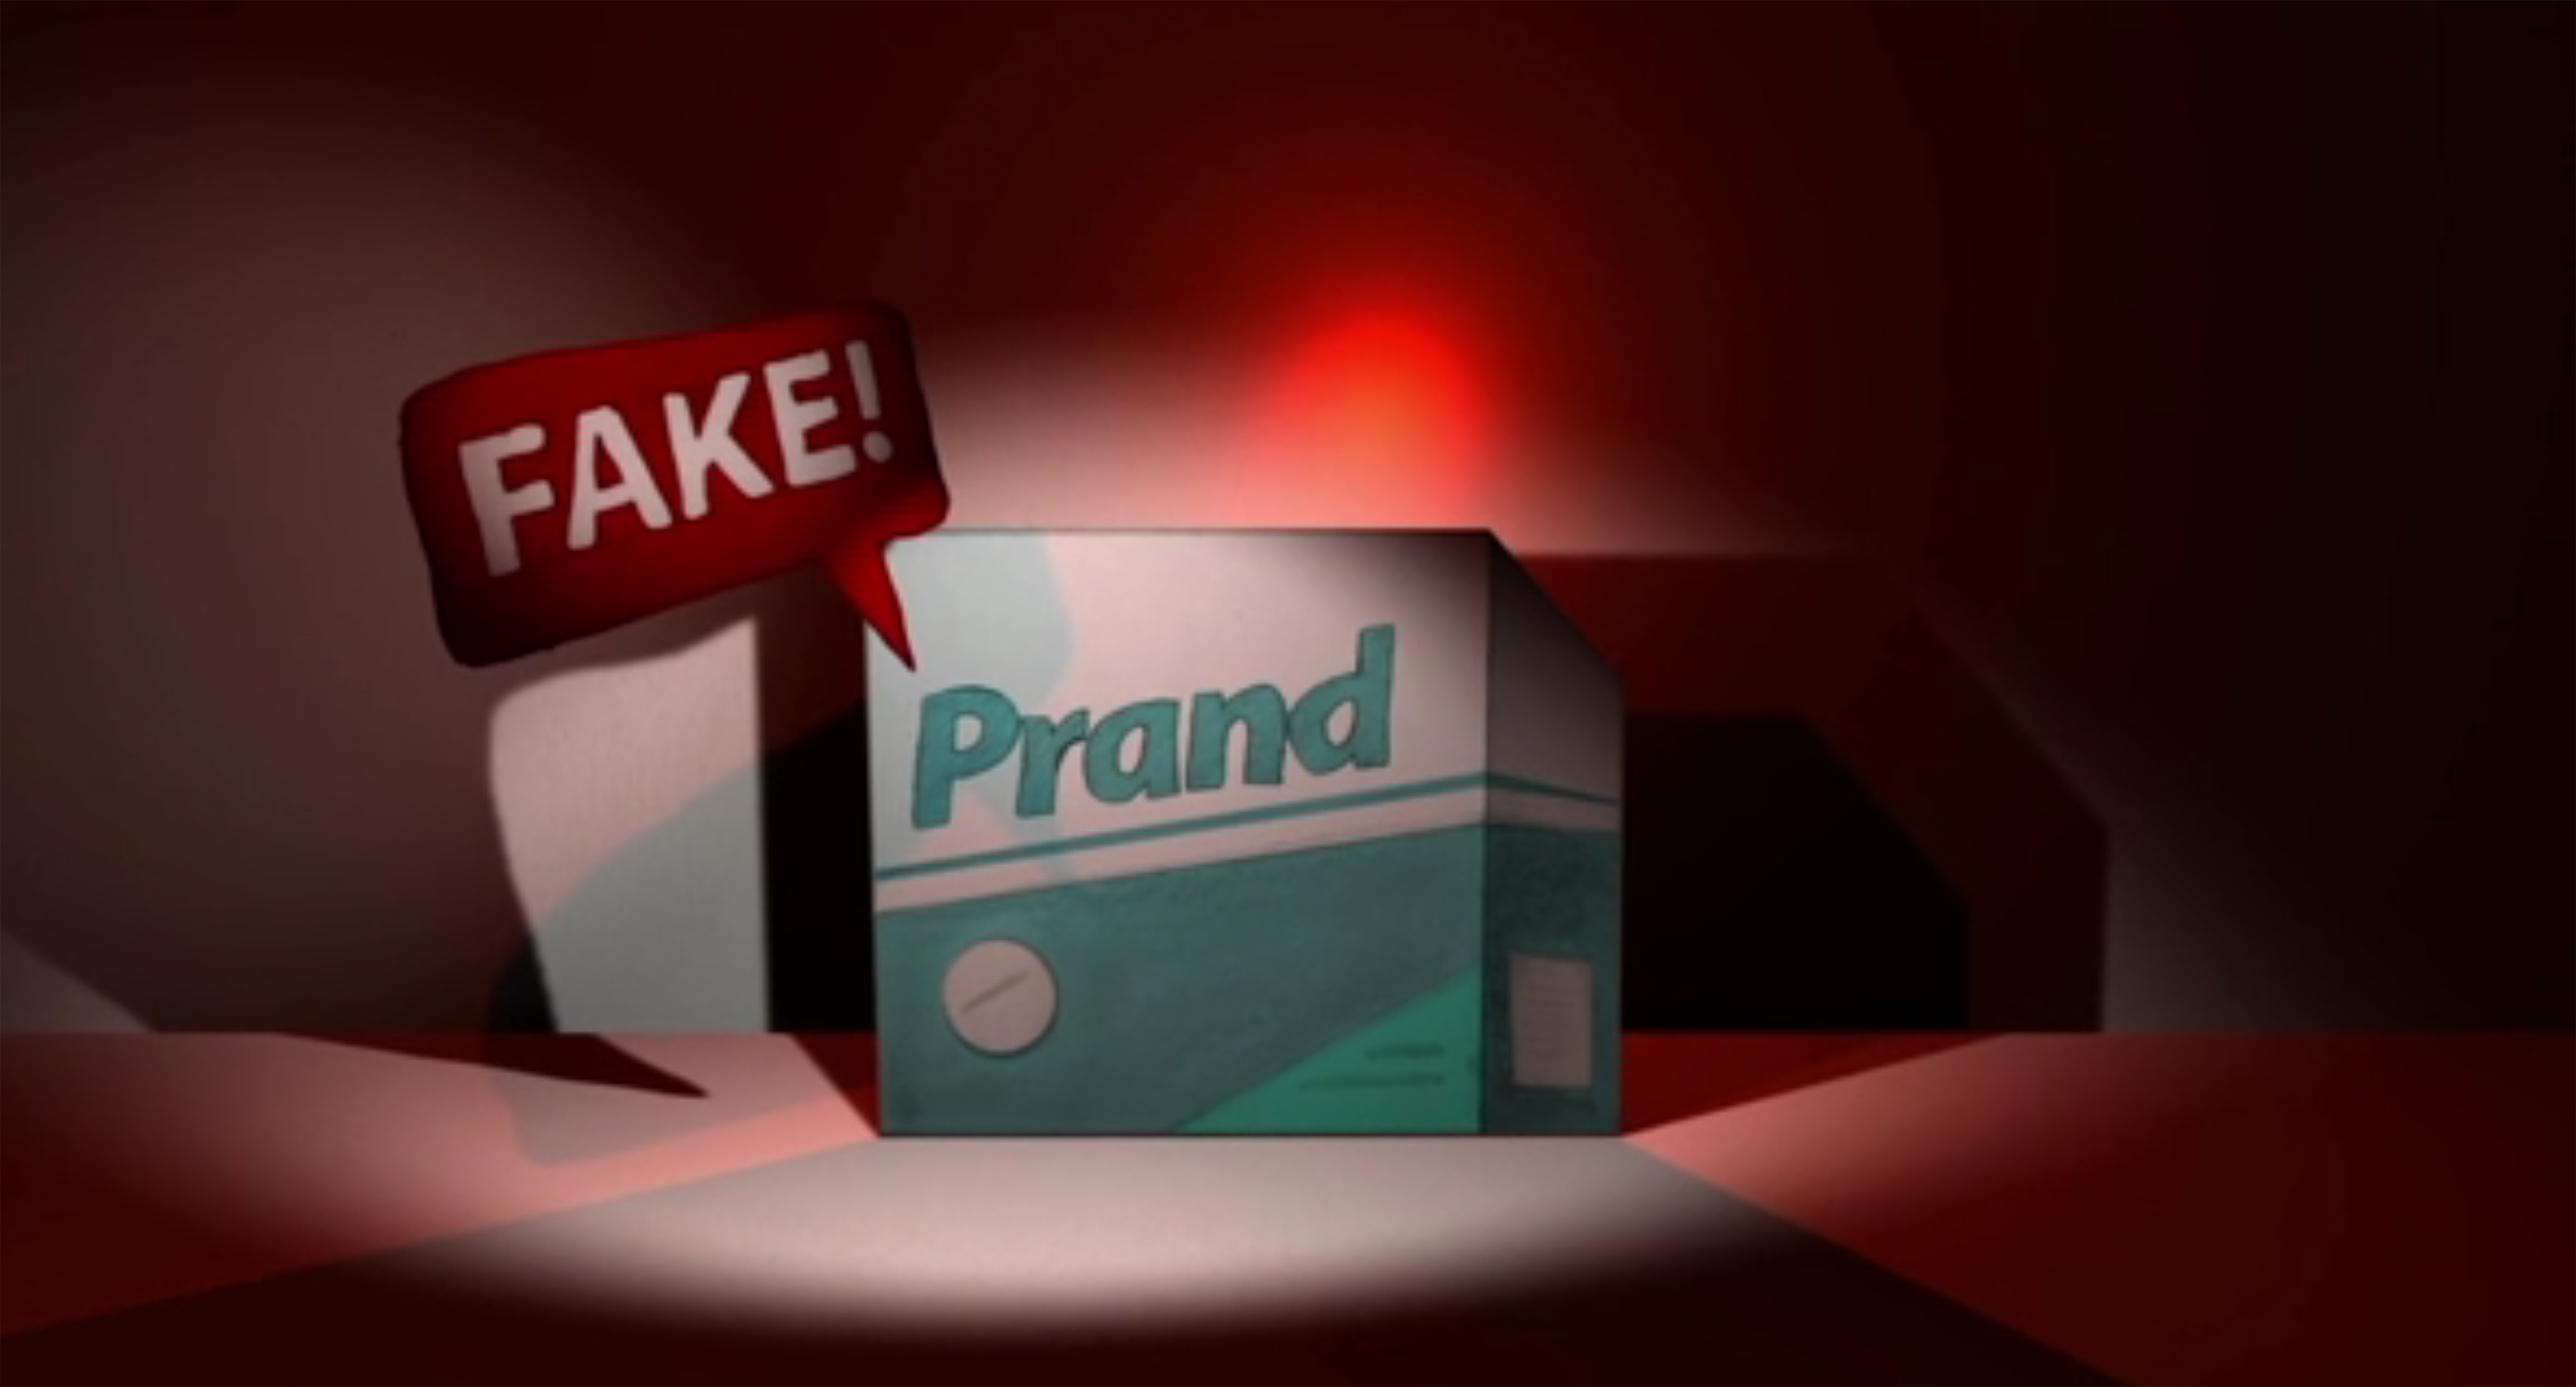 Substandard or counterfeit medicines